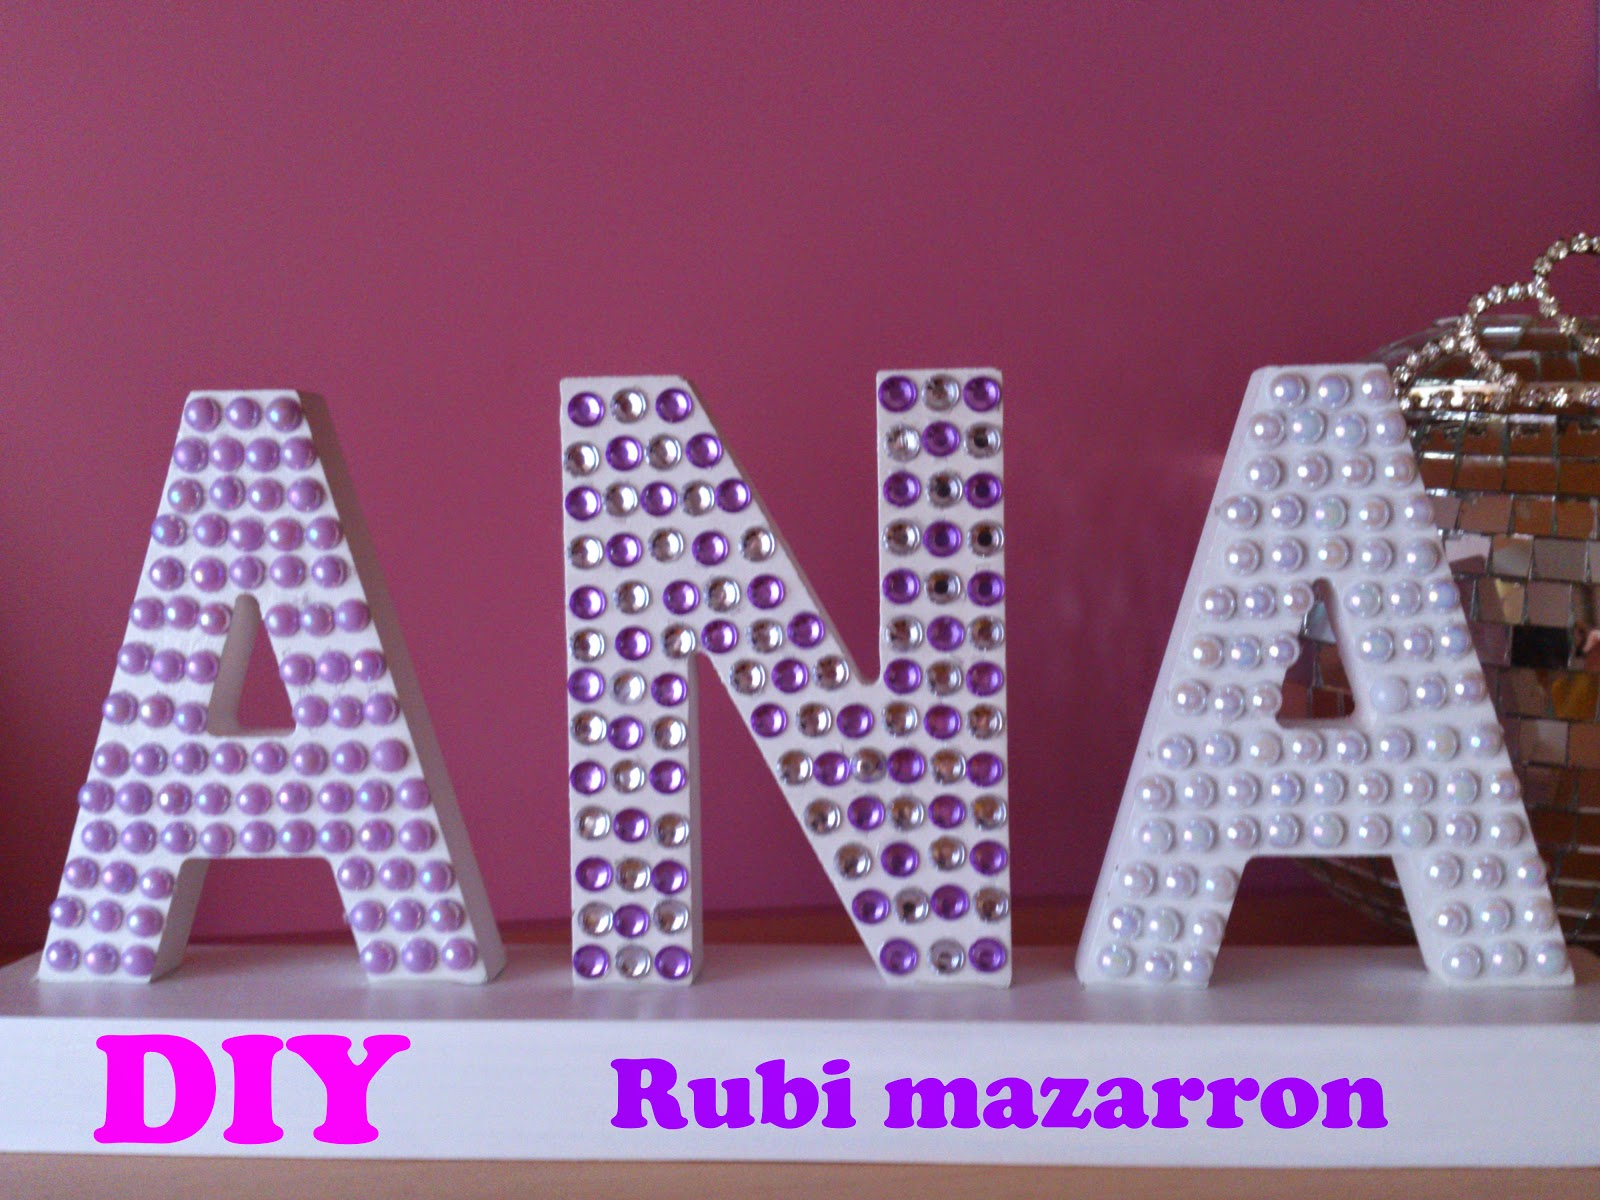 Rubi fotos de mis manualidades letras decoradas con strass for Letras de corcho decoradas